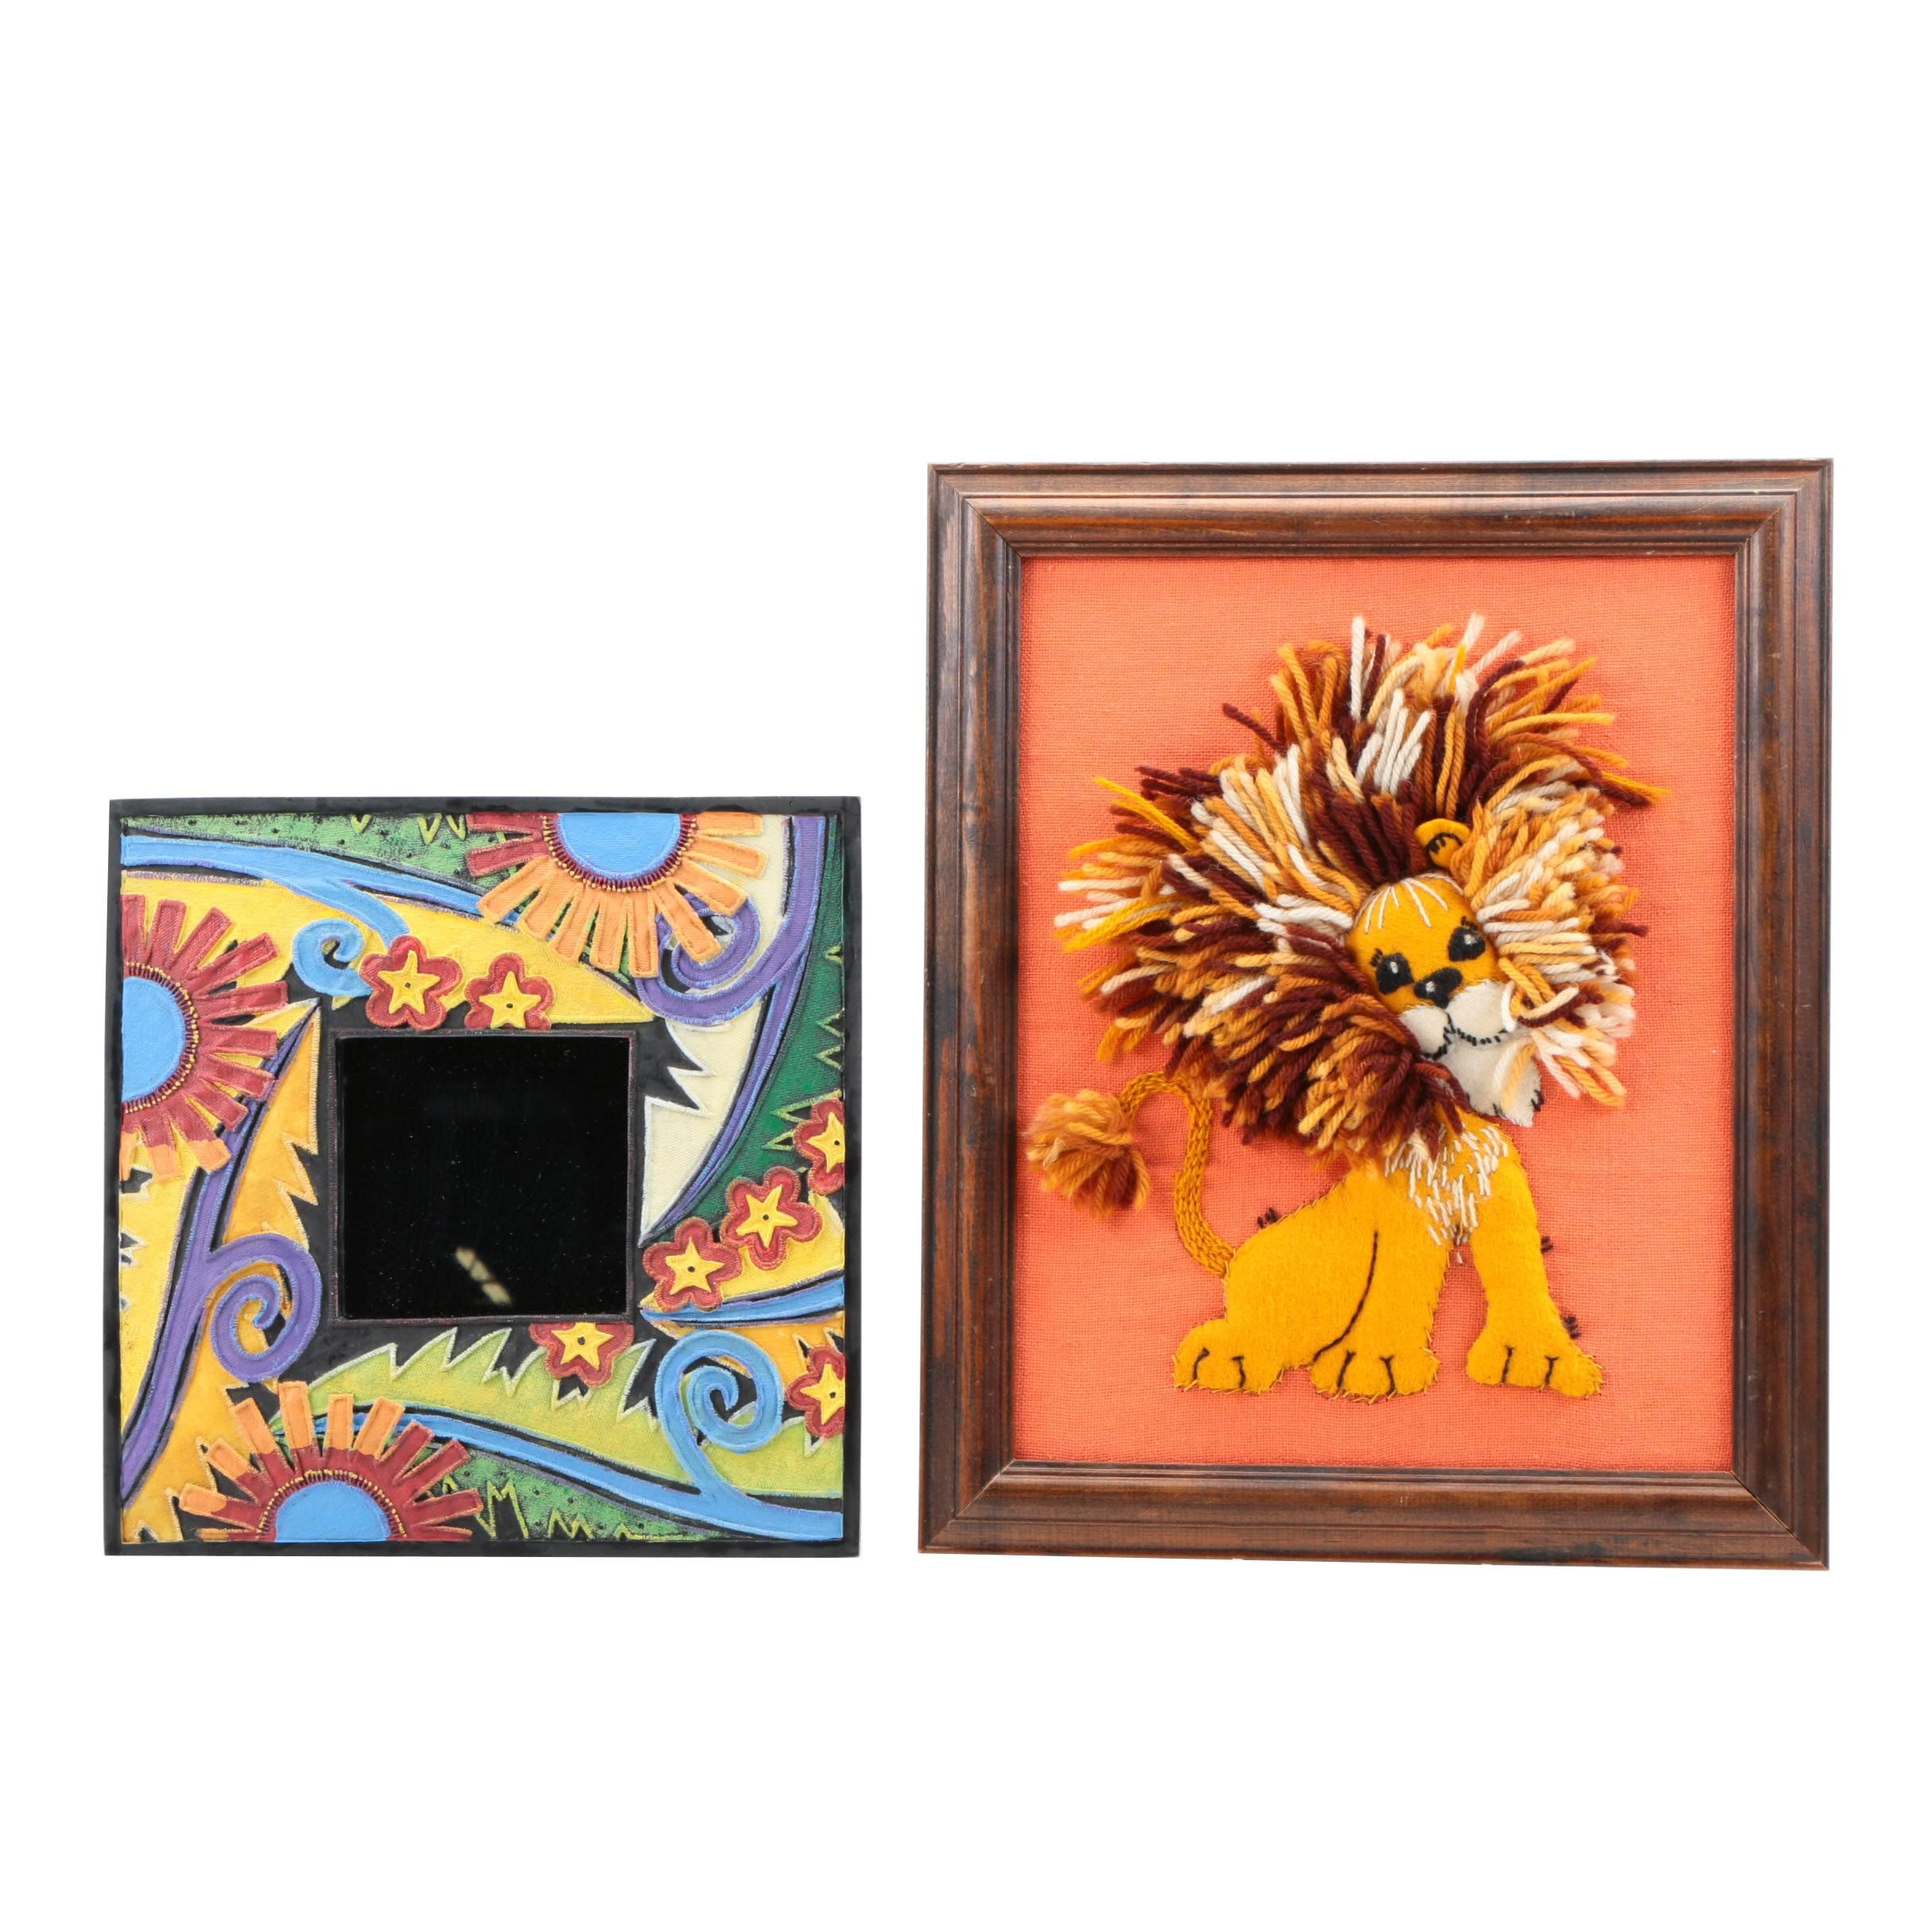 Floral Framed Wall Mirror and Stuffed Lion Embroidery